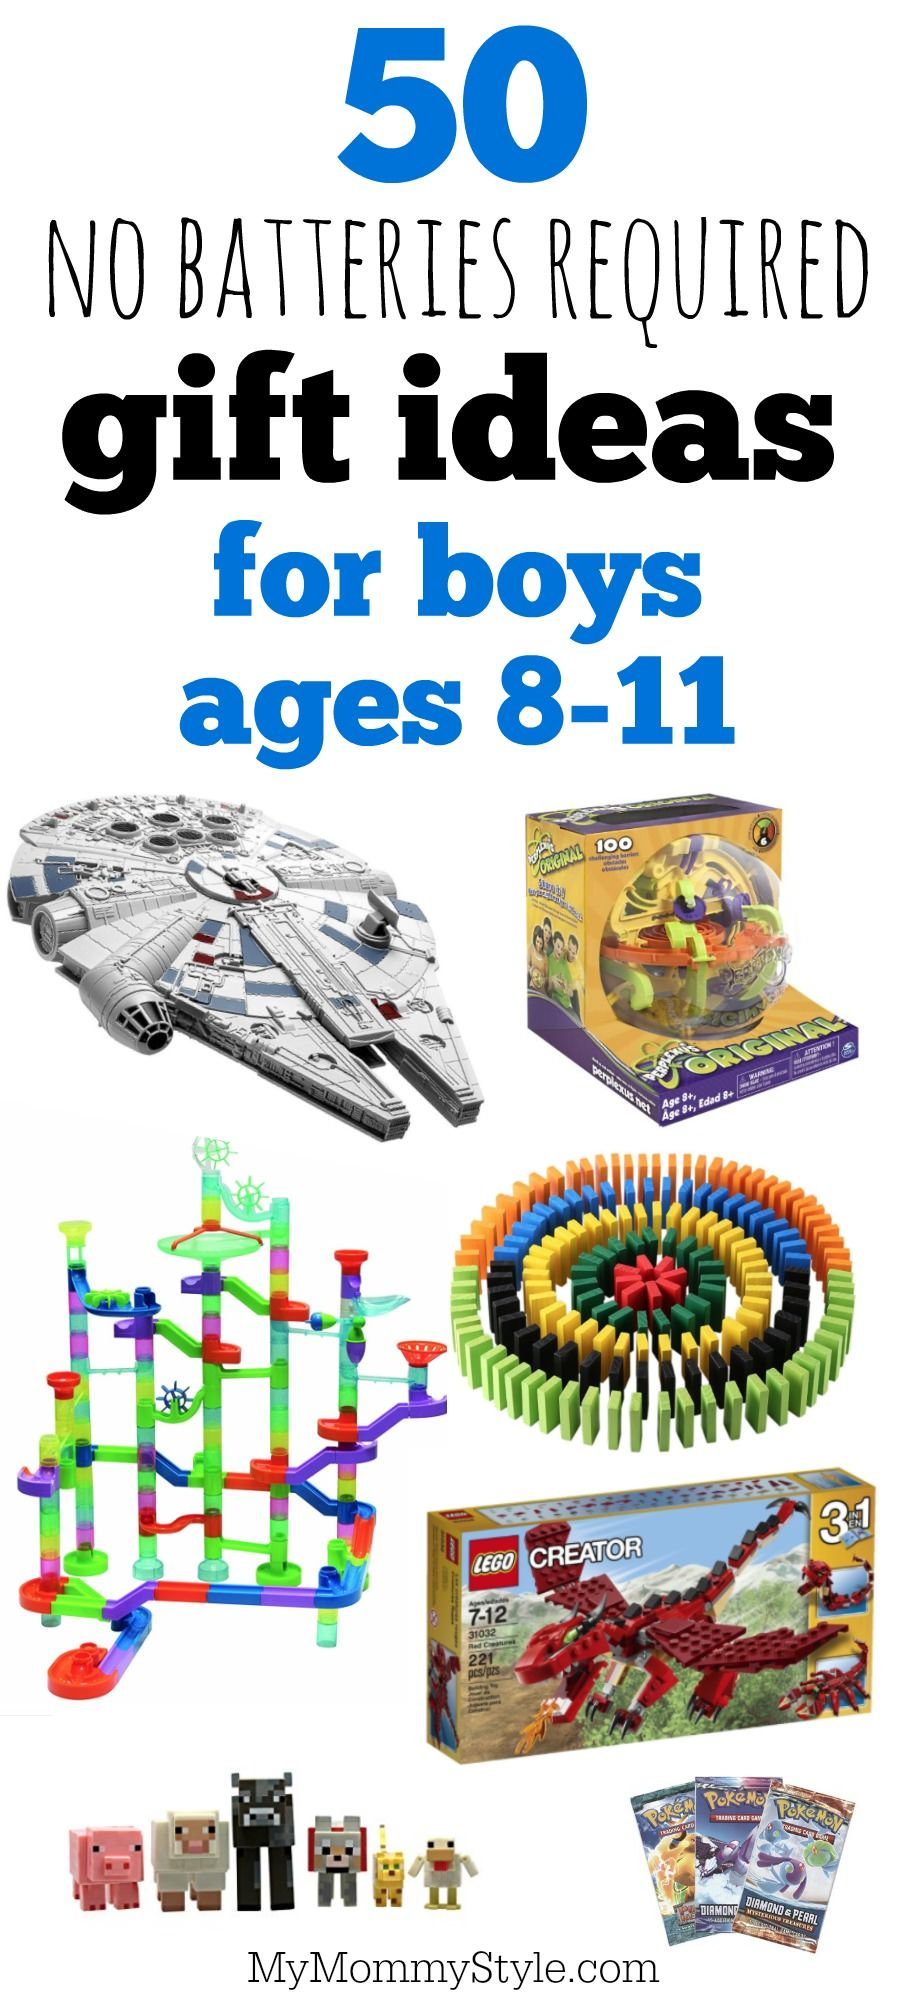 There are so many great options for battery free toys for preschoolers! We  love electronic